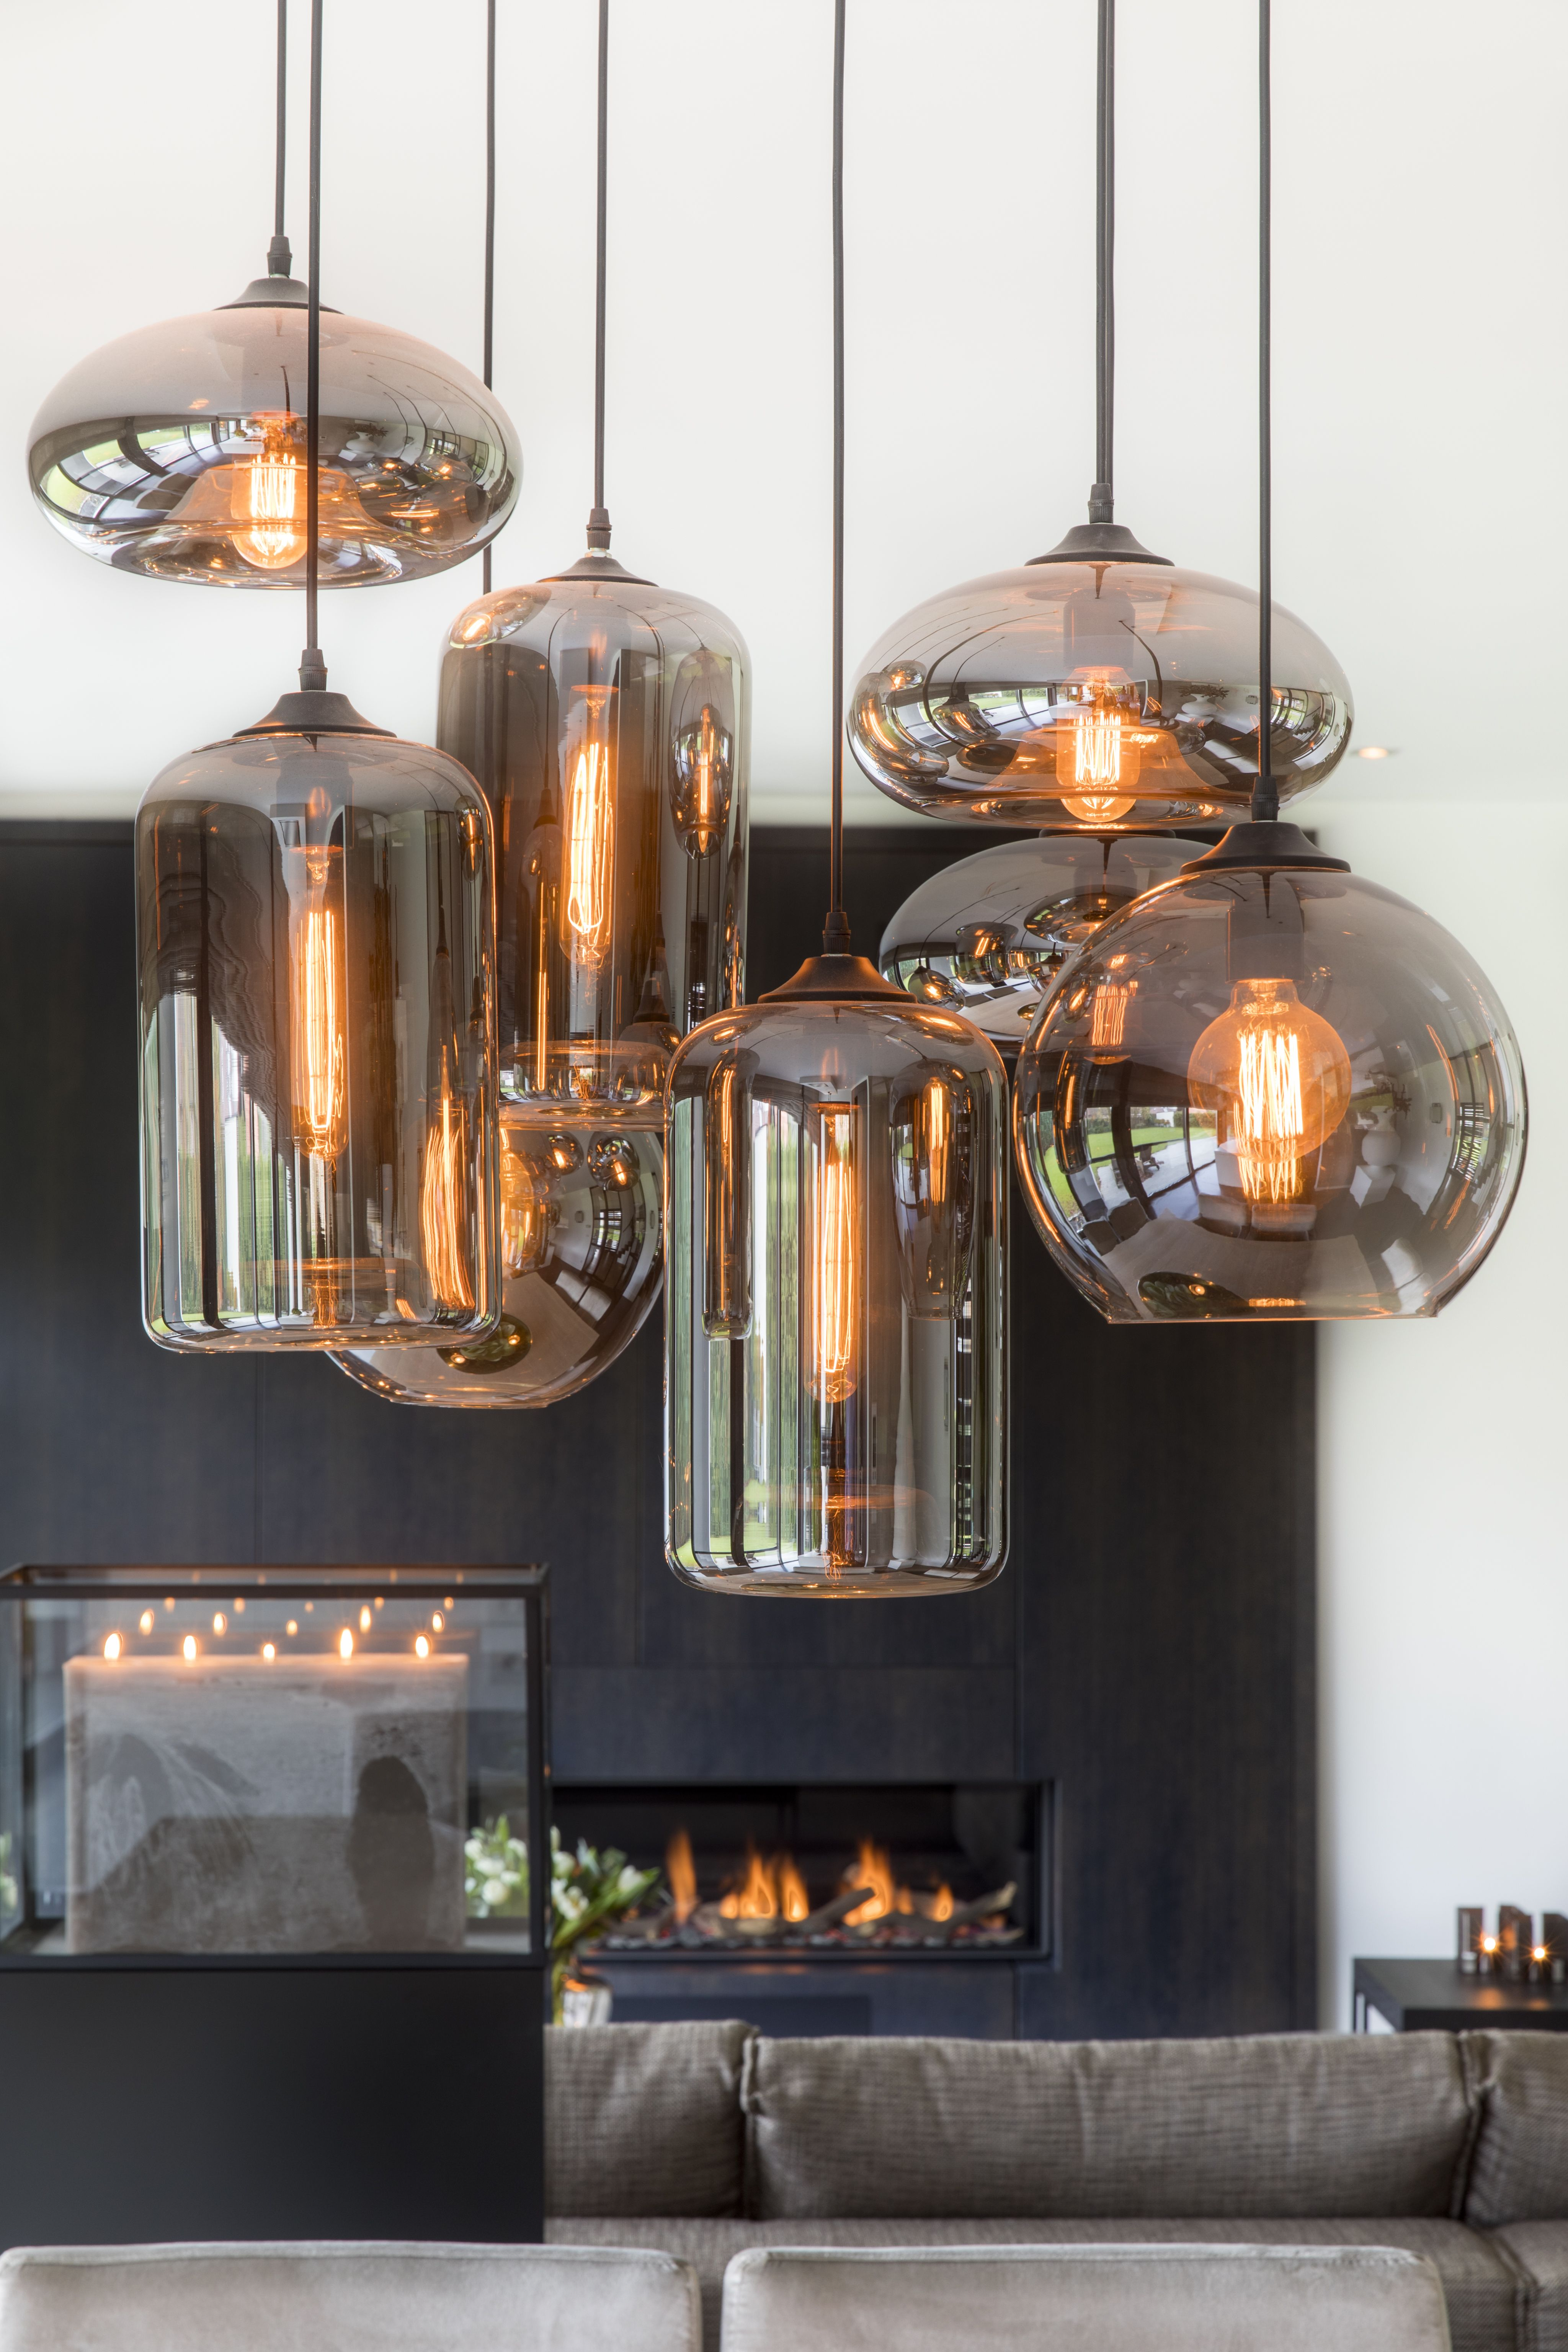 EVEBulbs in Metallic Smoke. Project EVELiving/Zoersel